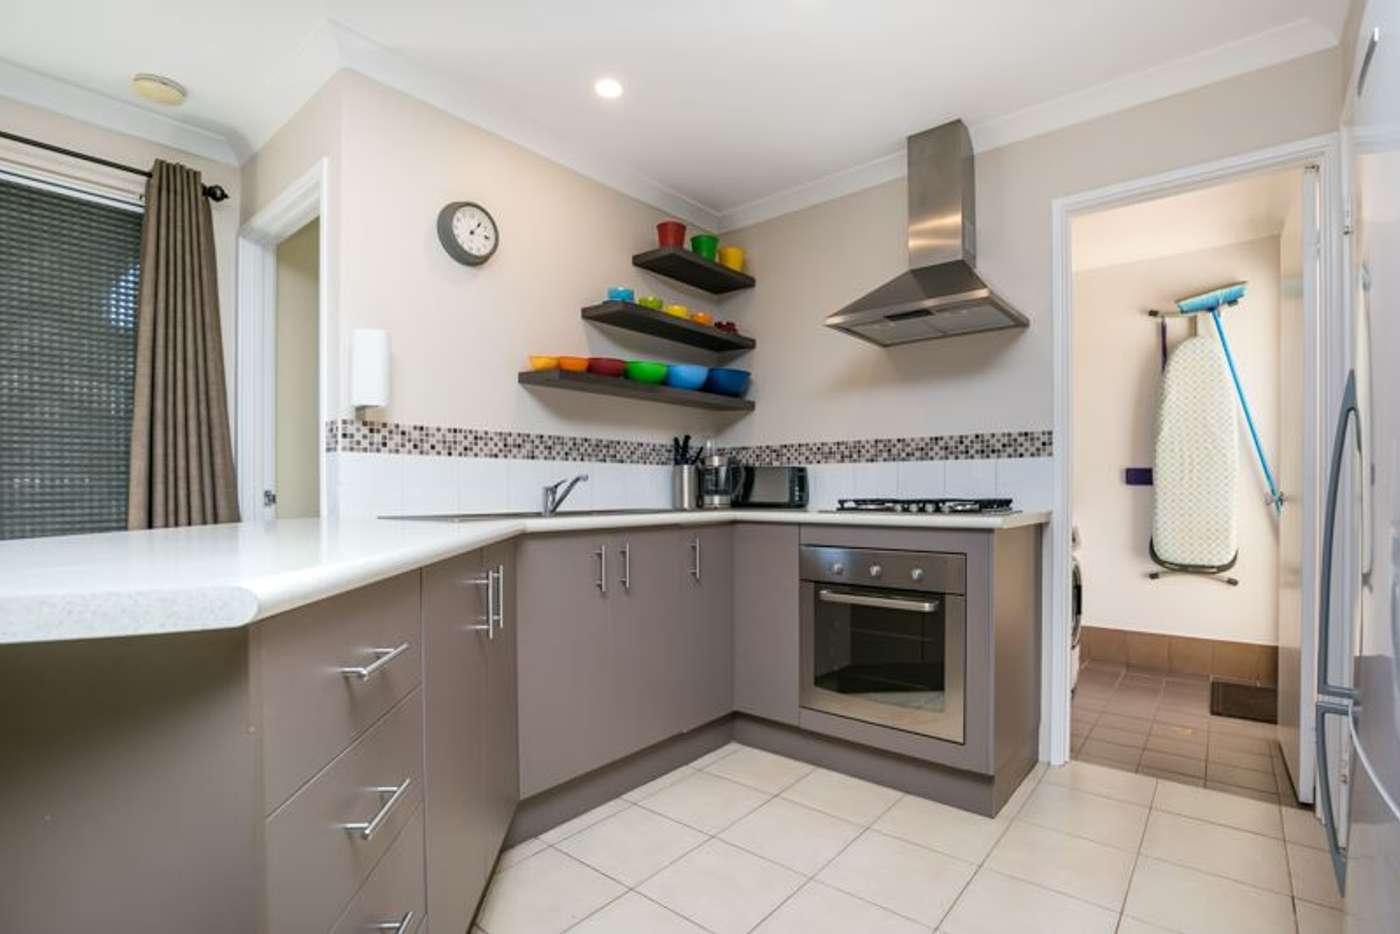 Sixth view of Homely house listing, 12 Watkins Loop, Tapping WA 6065